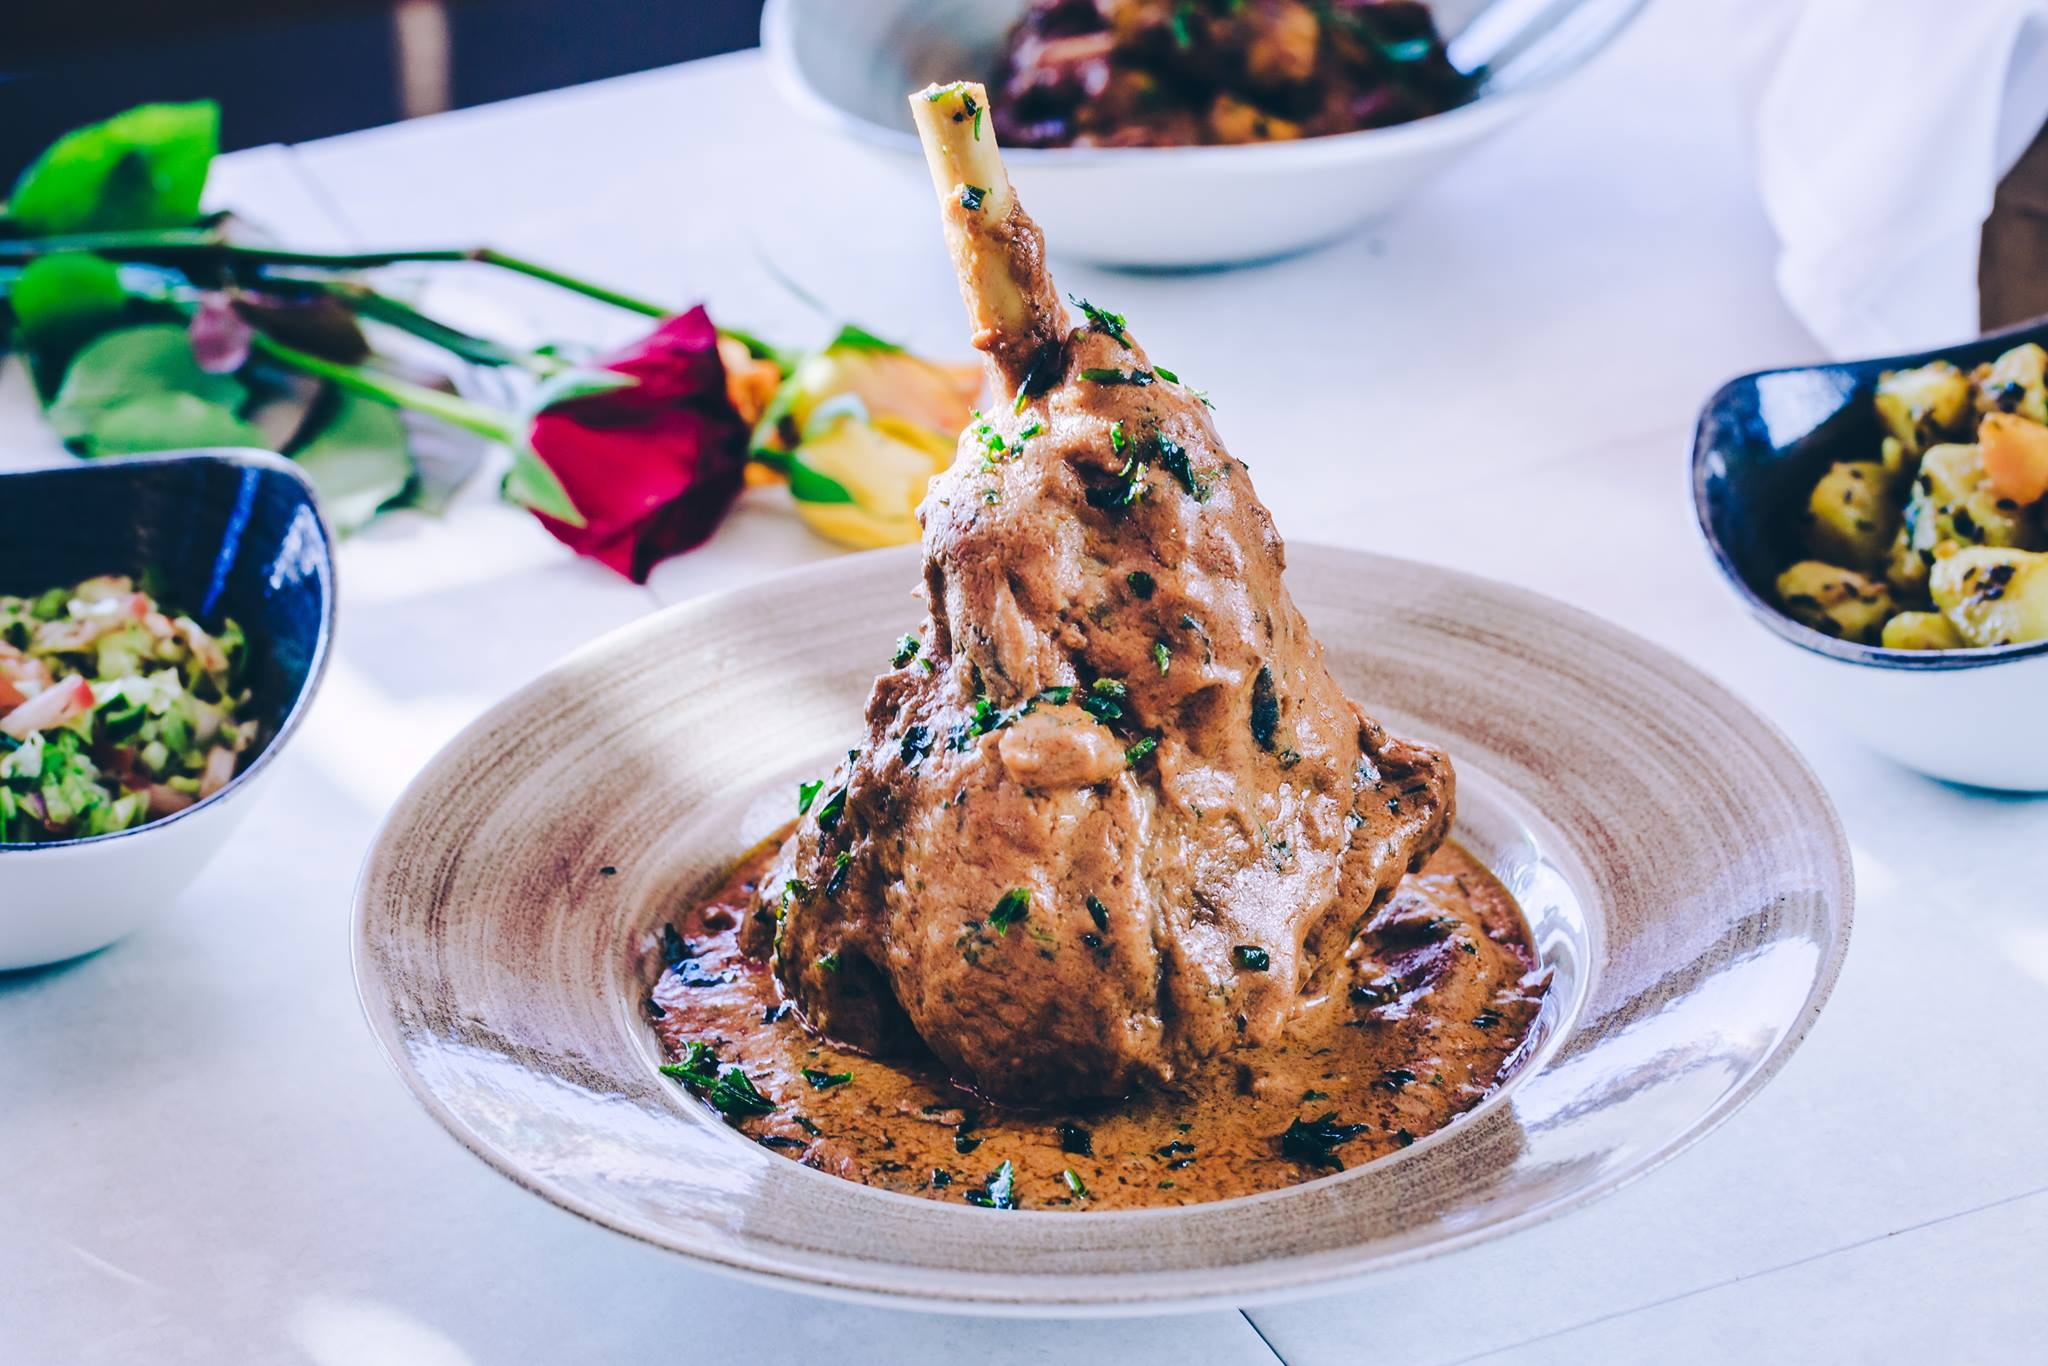 Raan-e-Sikandari leg of lamb with dark rum herbs and spices, a dish from Indian Restaurant Merchant City Glasgow